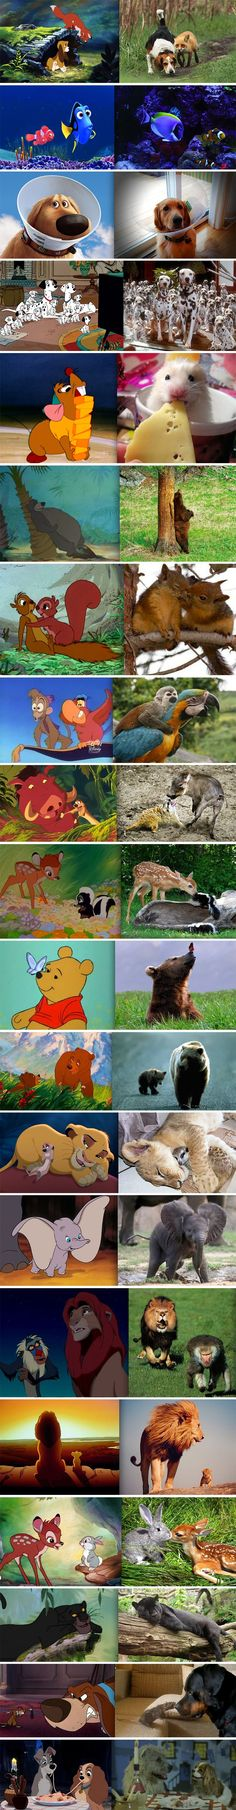 My favorite is the Pooh bear with the butterfly.